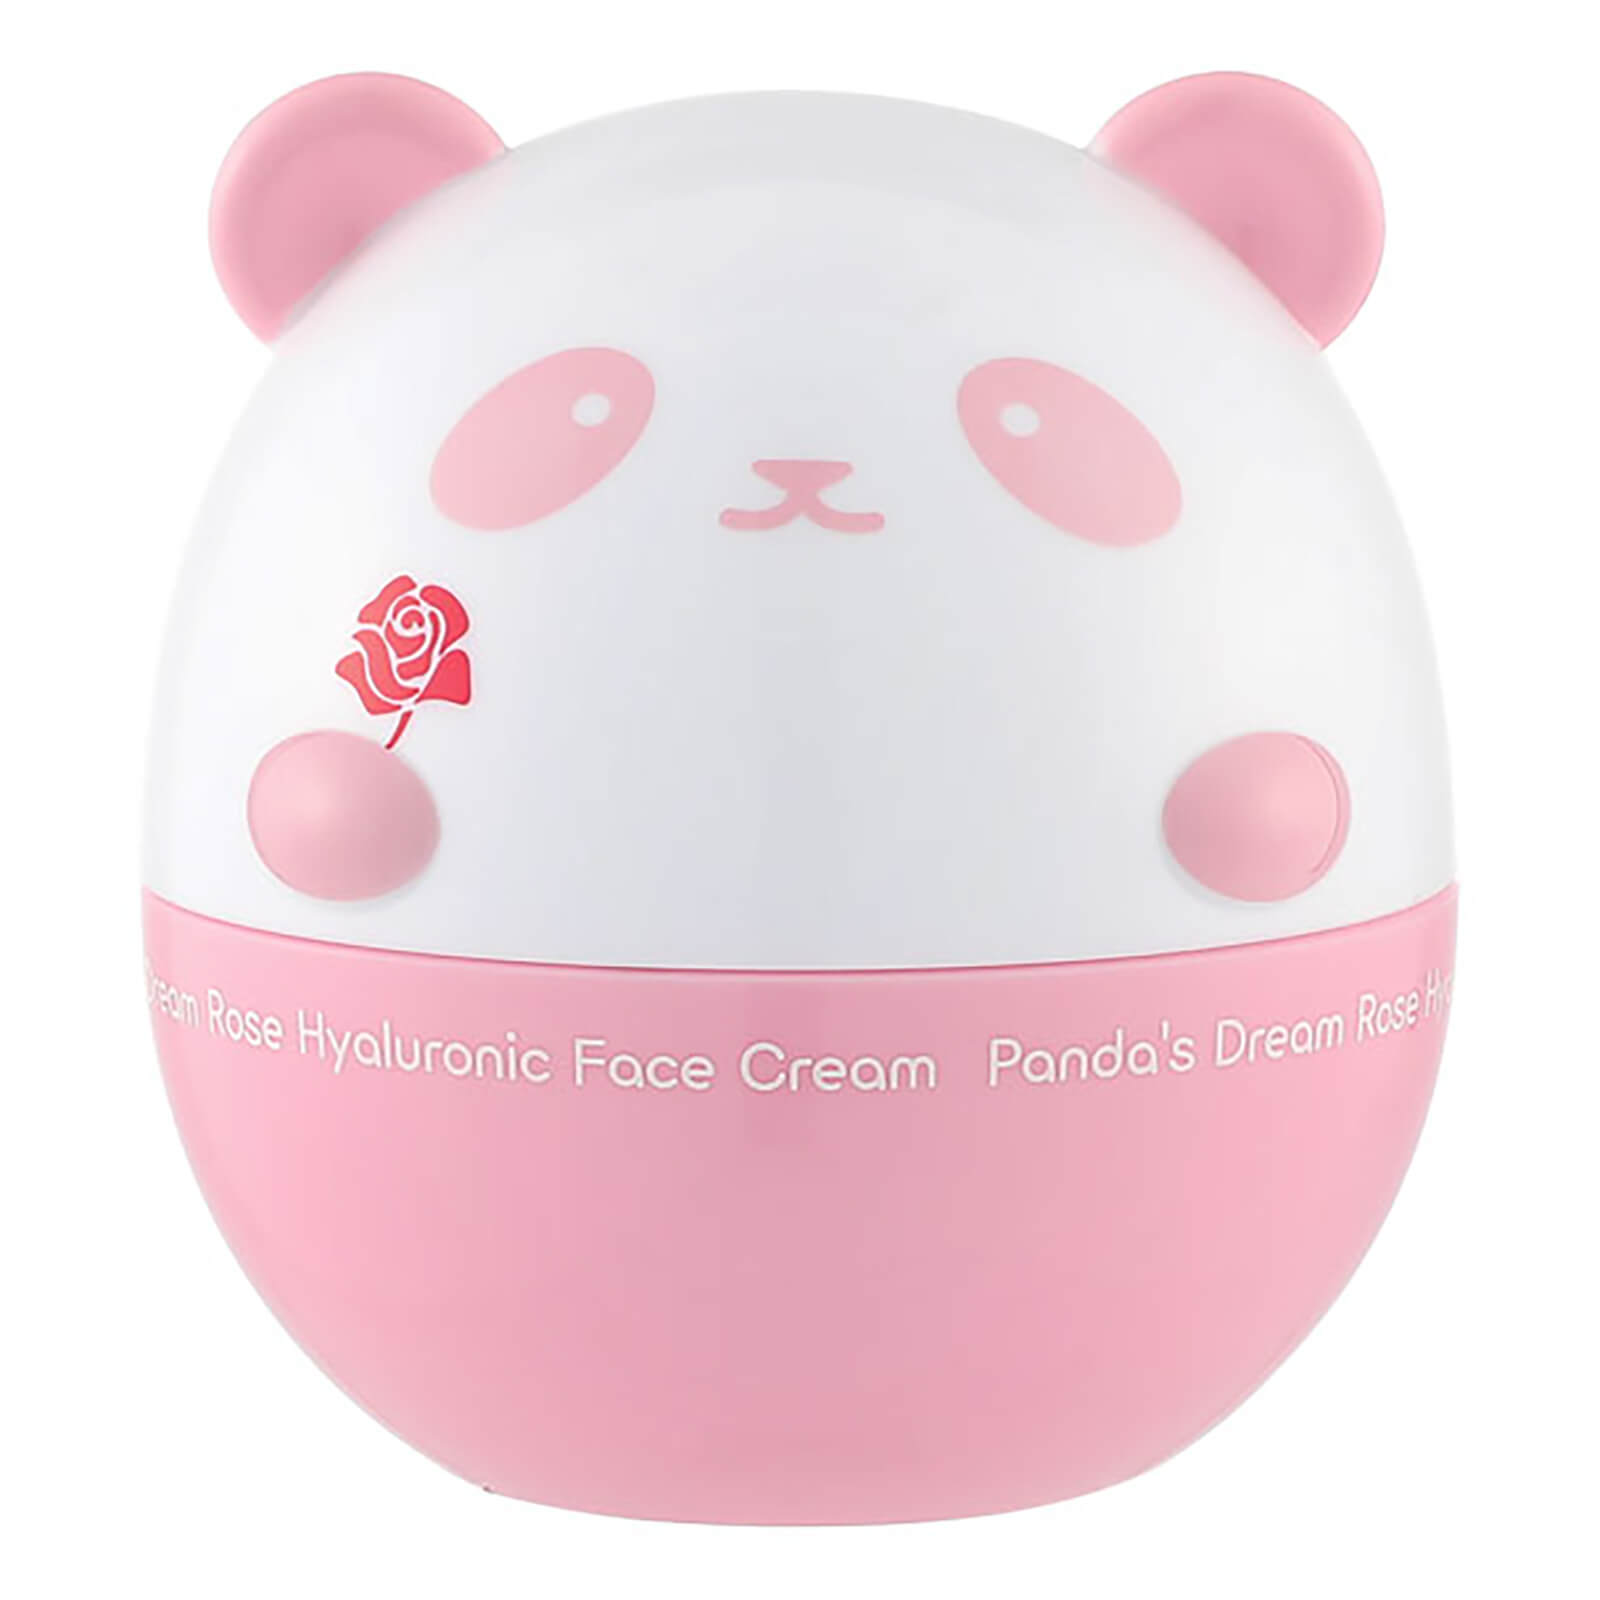 TONYMOLY - TONYMOLY Panda's Dream Rose Hyaluronic Face Cream